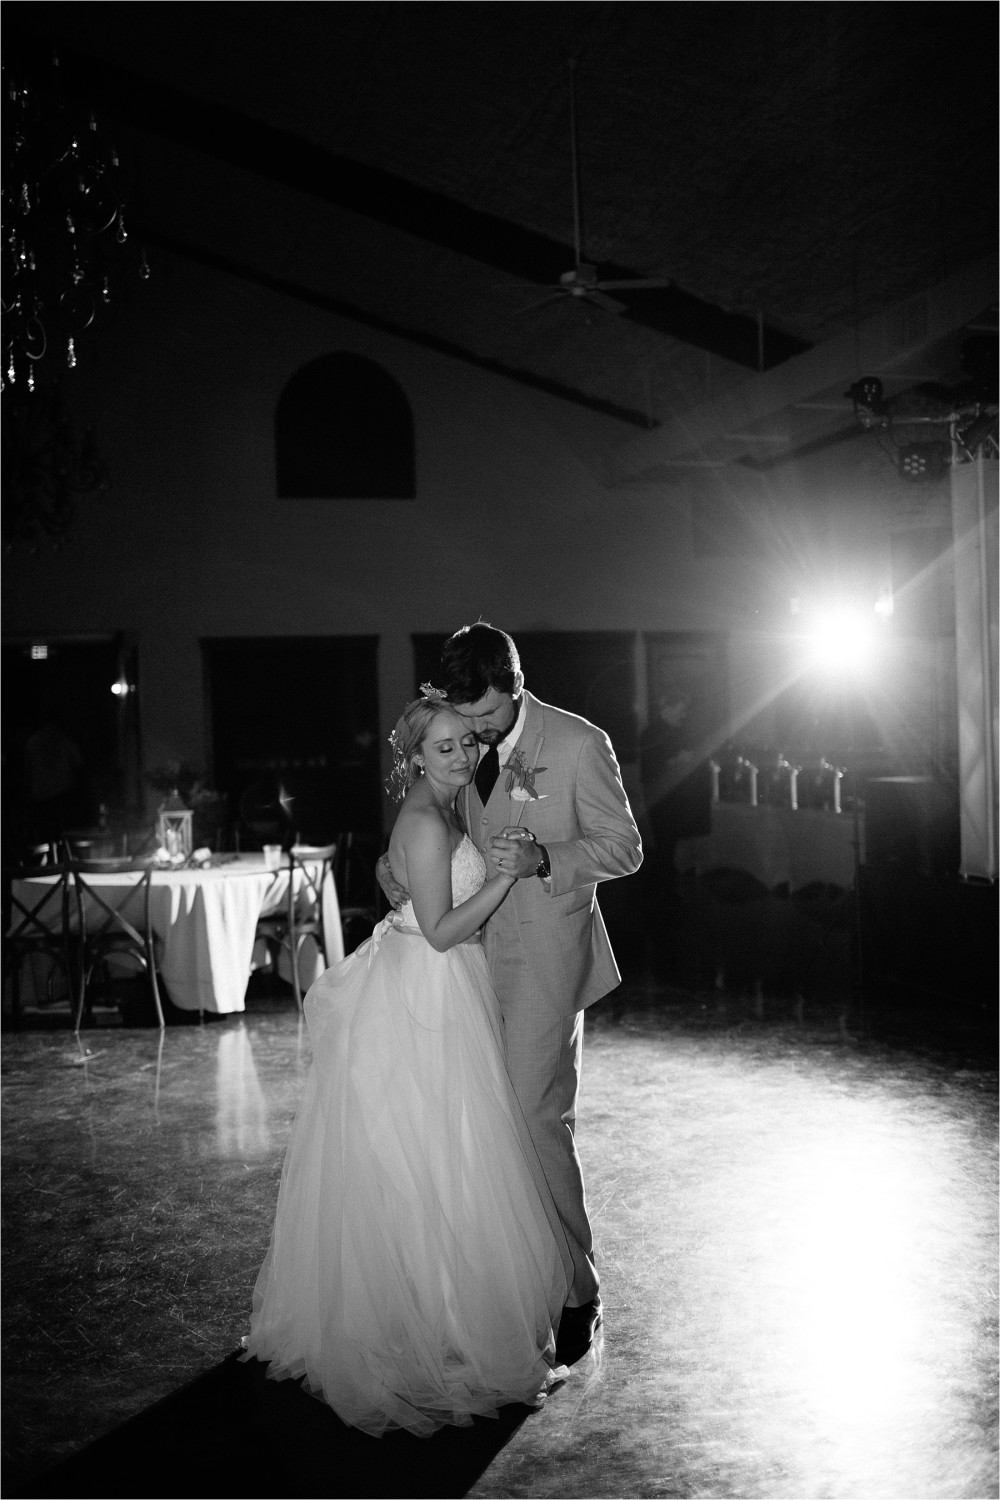 brad-lara-__-a-grey-and-blush-pink-intimate-wedding-at-hidden-waters-event-center-in-waxahachie-tx-by-north-texas-wedding-photographer-rachel-meagan-photography-_-098